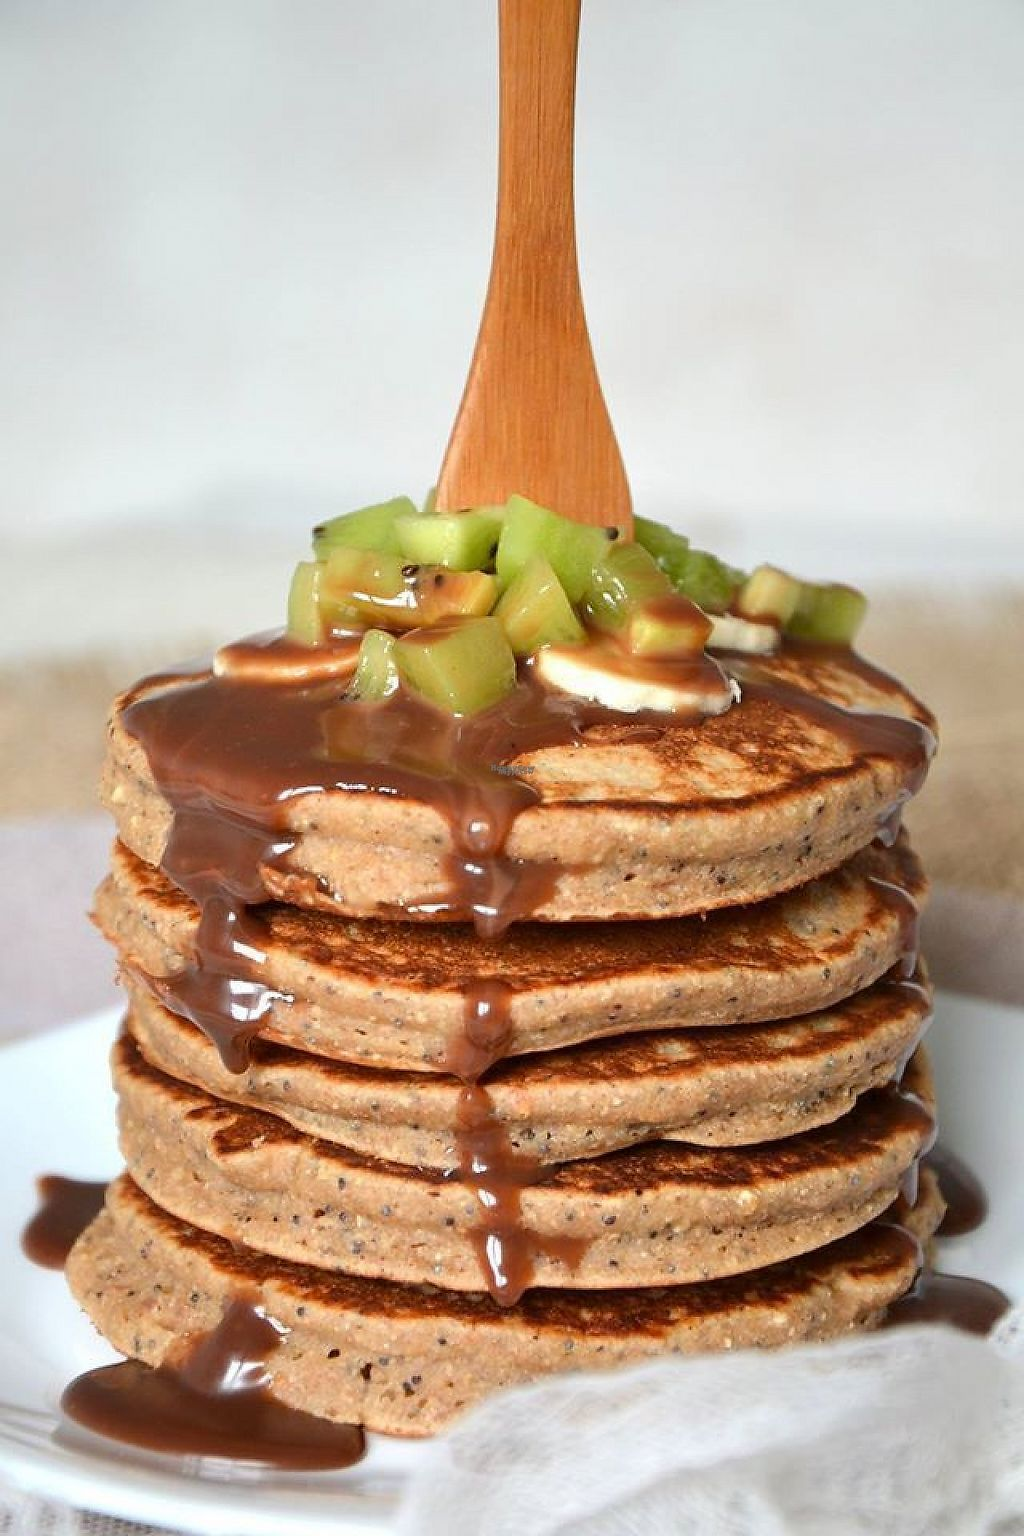 "Photo of La Vie Claire  by <a href=""/members/profile/community"">community</a> <br/>vegan pancakes  <br/> February 4, 2017  - <a href='/contact/abuse/image/72027/221880'>Report</a>"